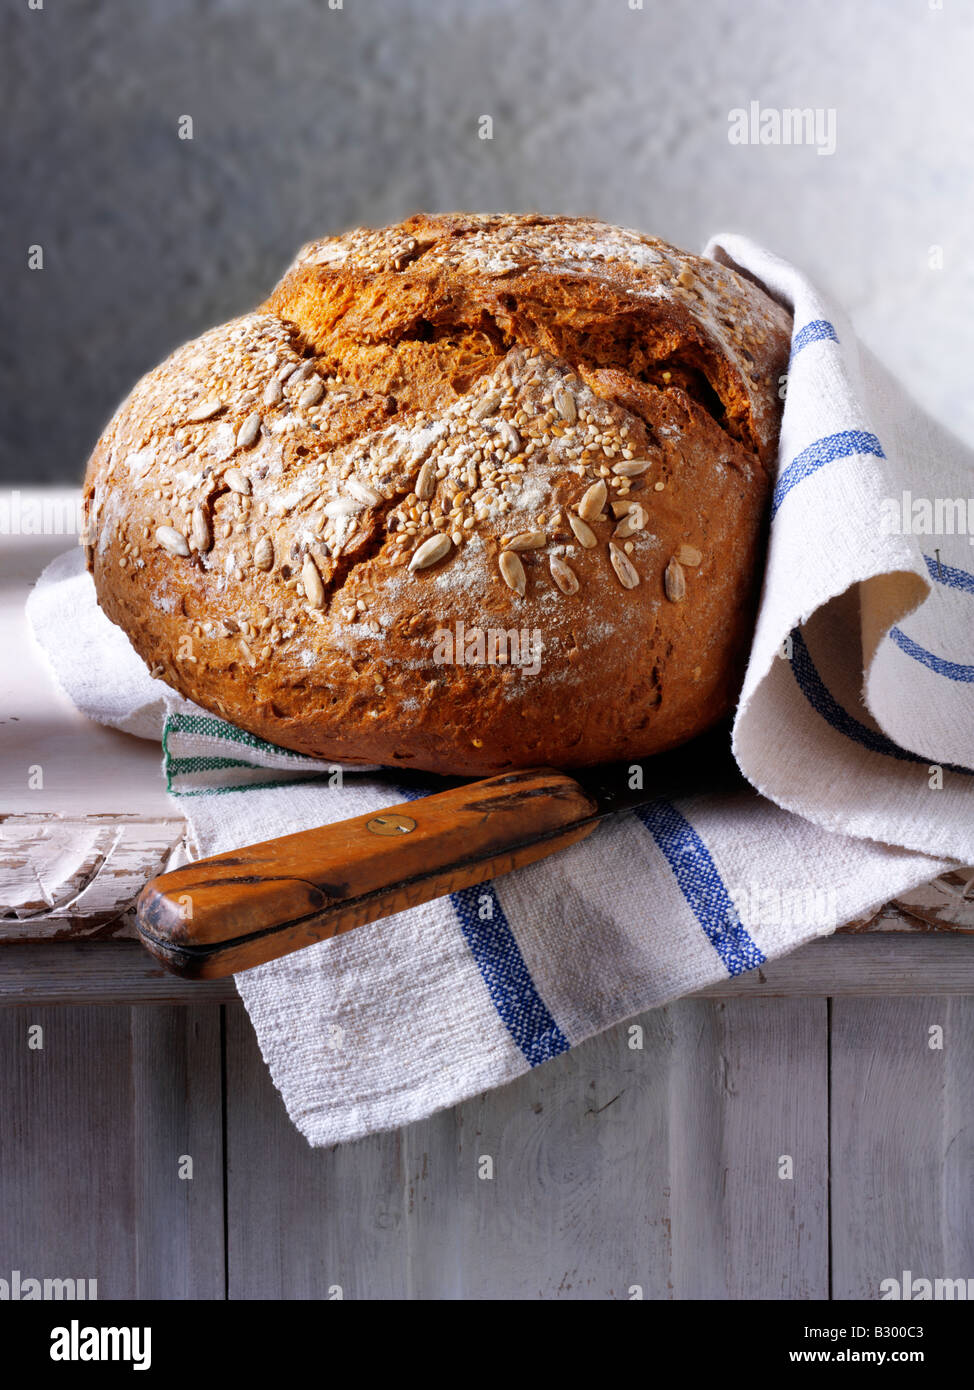 loaf of wholemeal bread - Stock Image